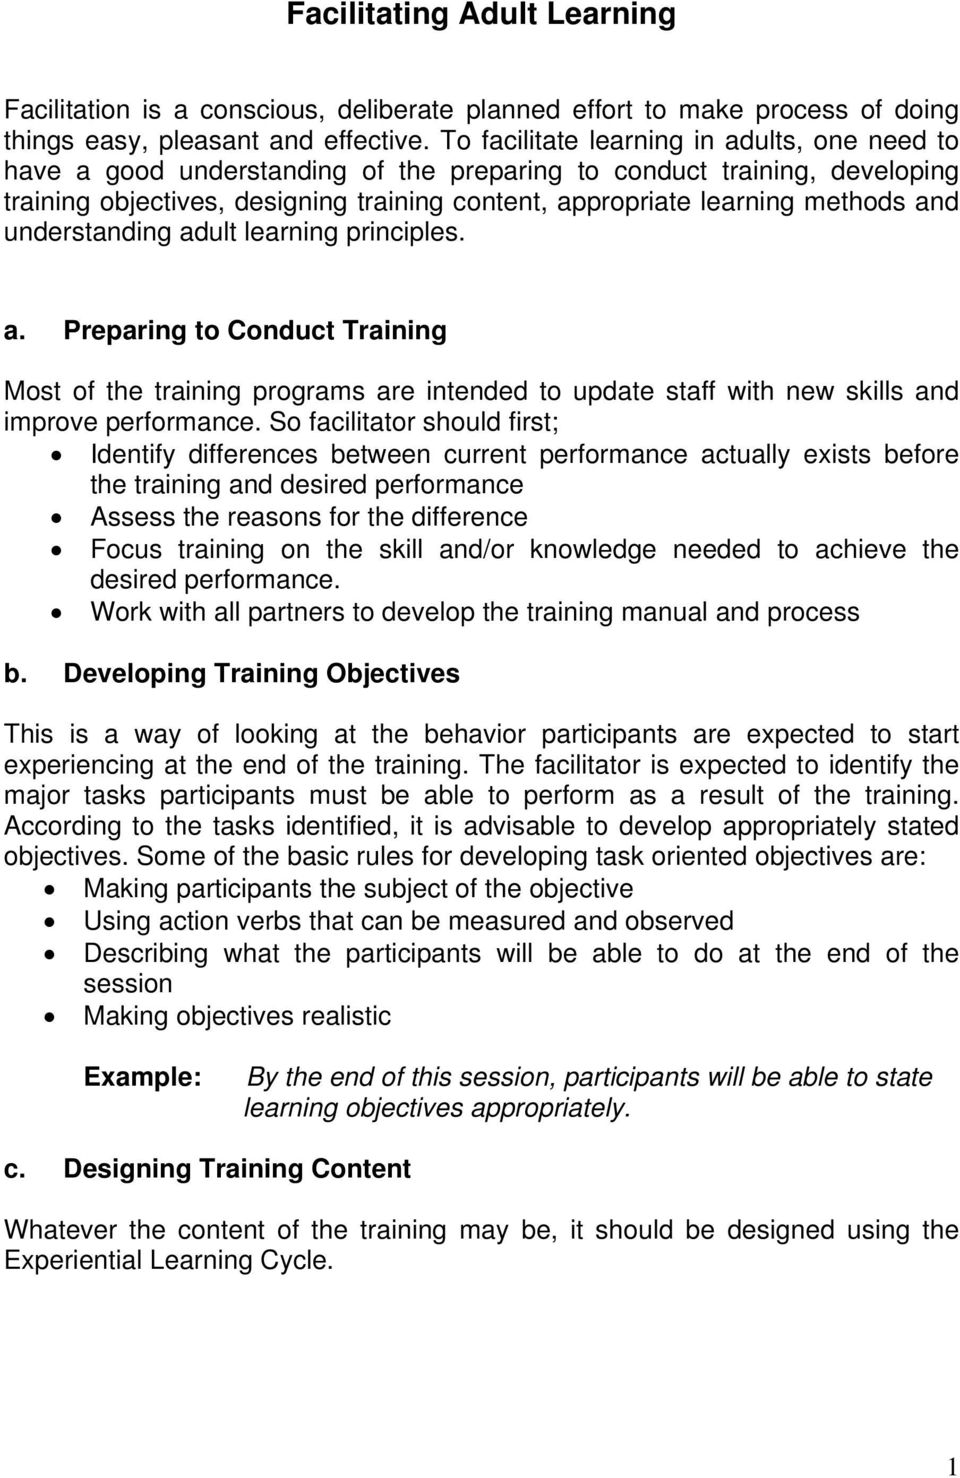 and understanding adult learning principles. a. Preparing to Conduct Training Most of the training programs are intended to update staff with new skills and improve performance.